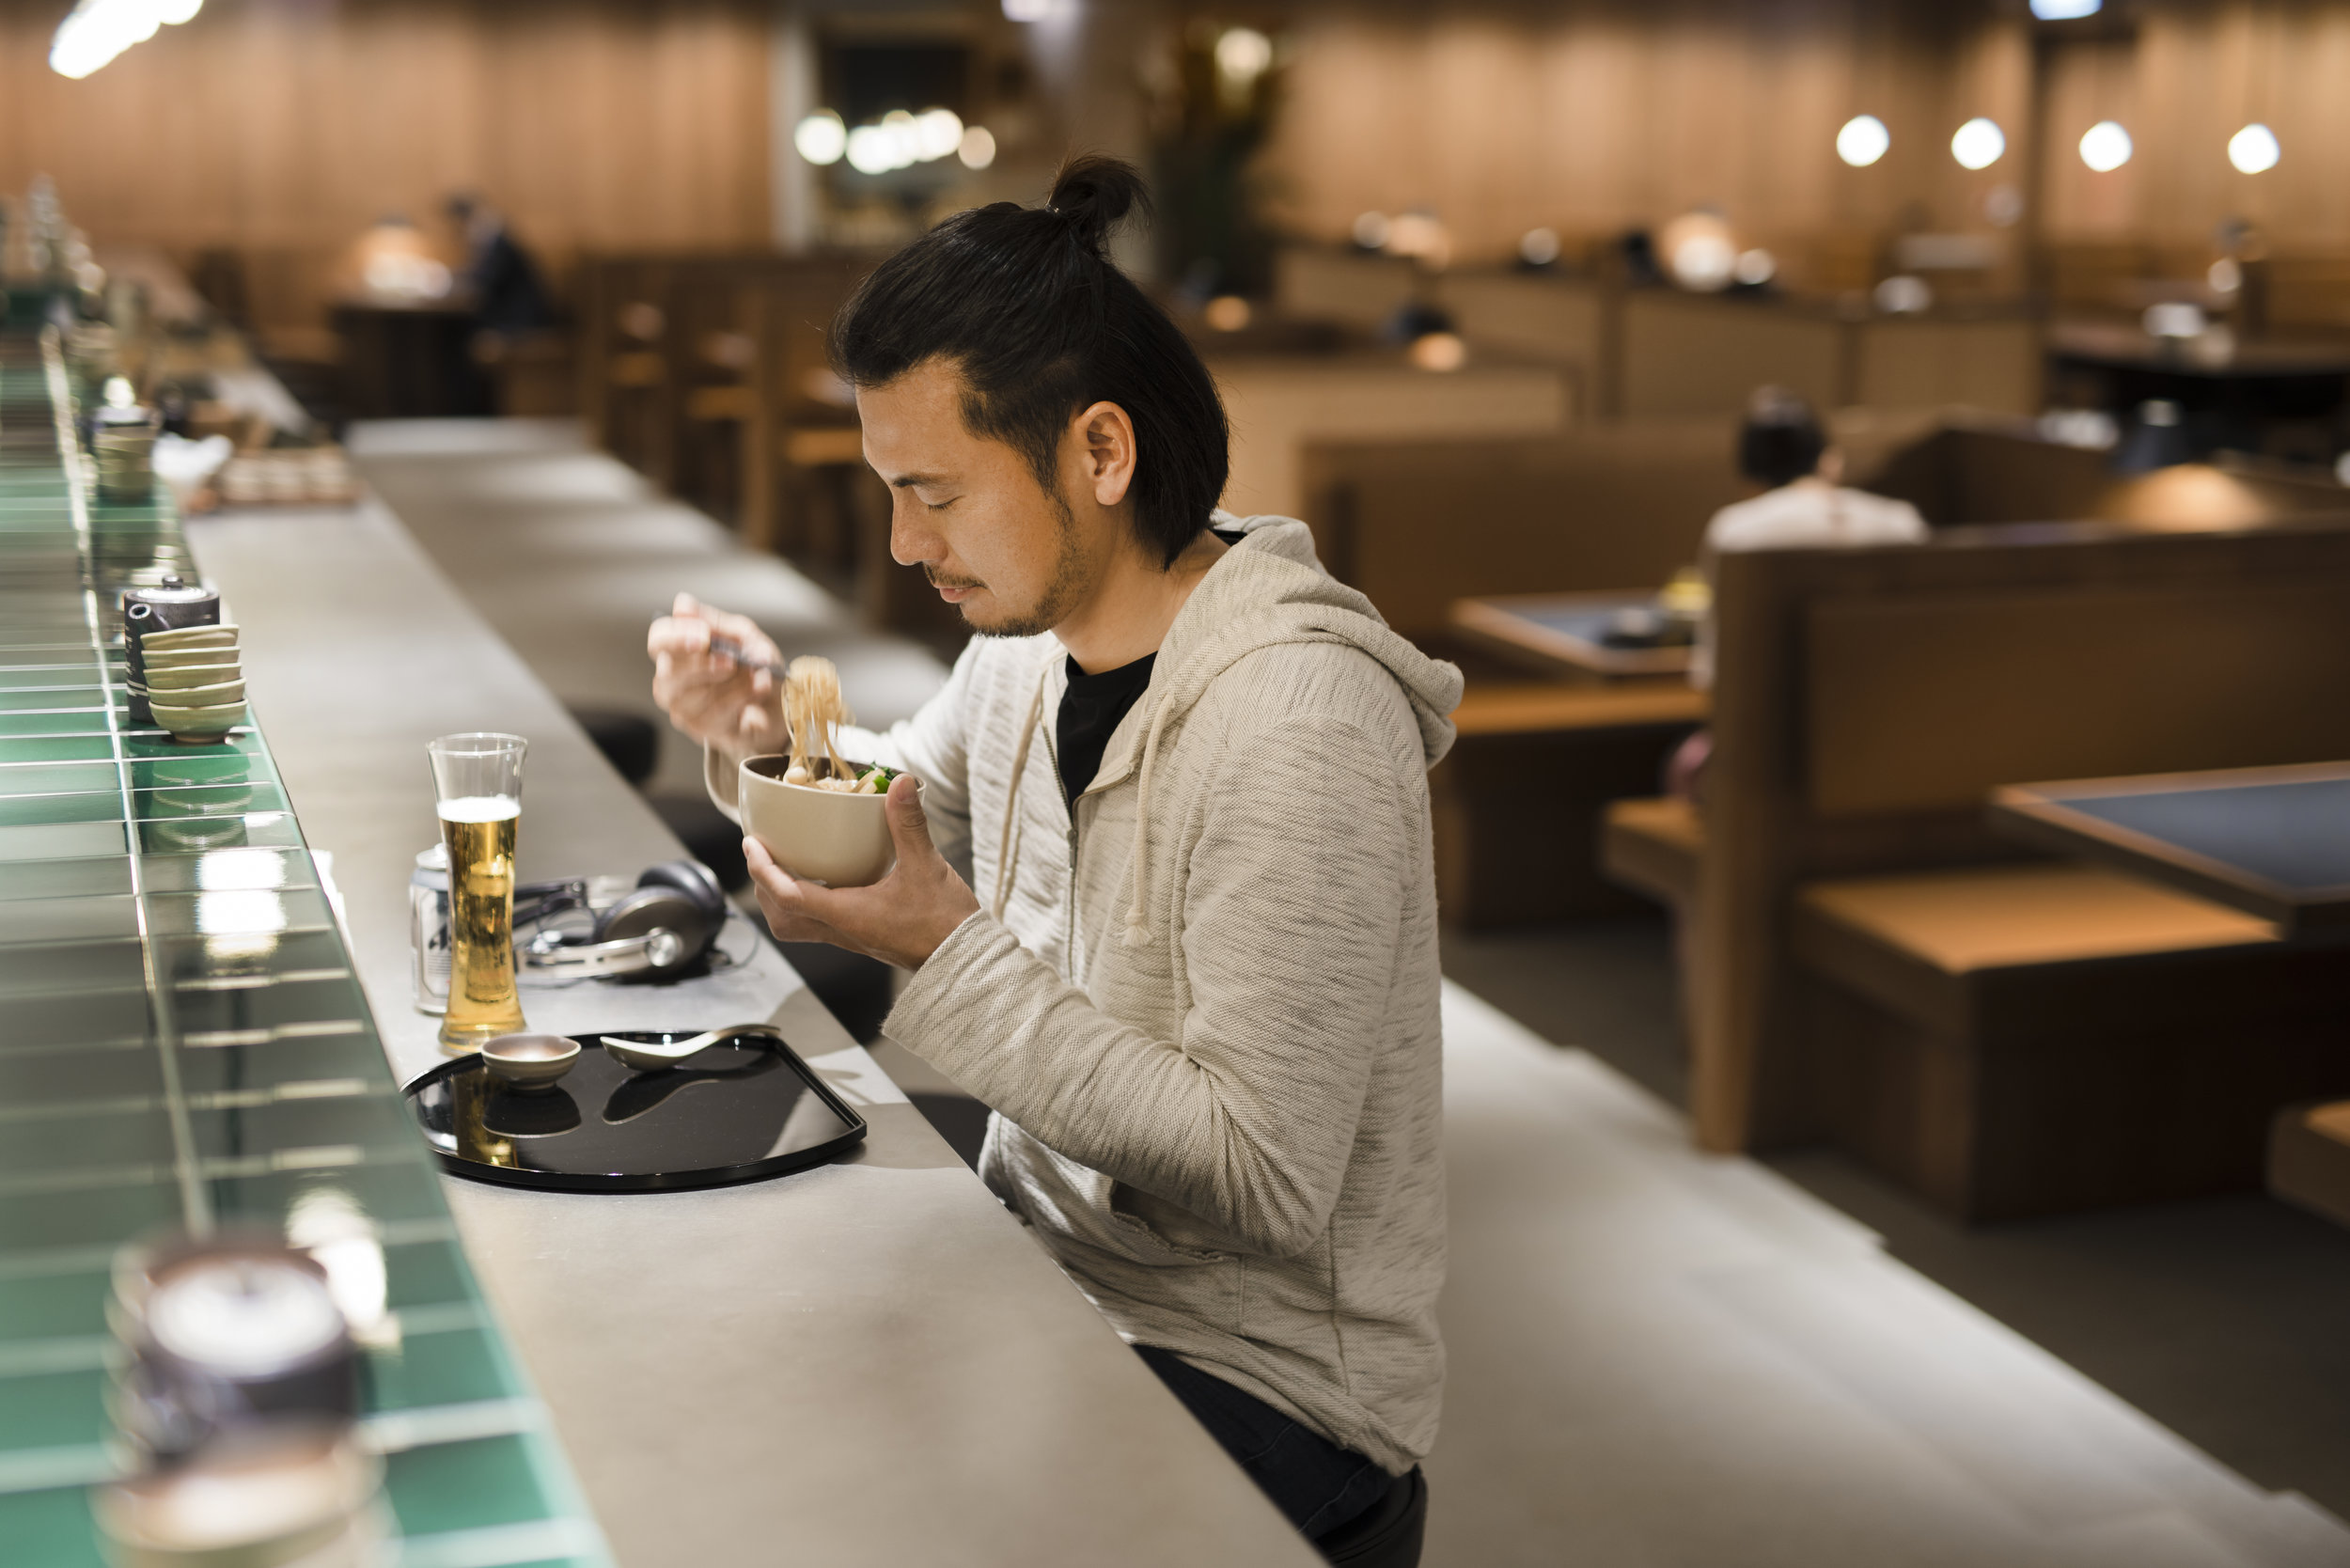 The Noodle Bar is a much-loved Cathay lounge 'darling' for its made-to-order noodles. Frequent flyers know their order before they even arrive, and place it as soon as they get there.